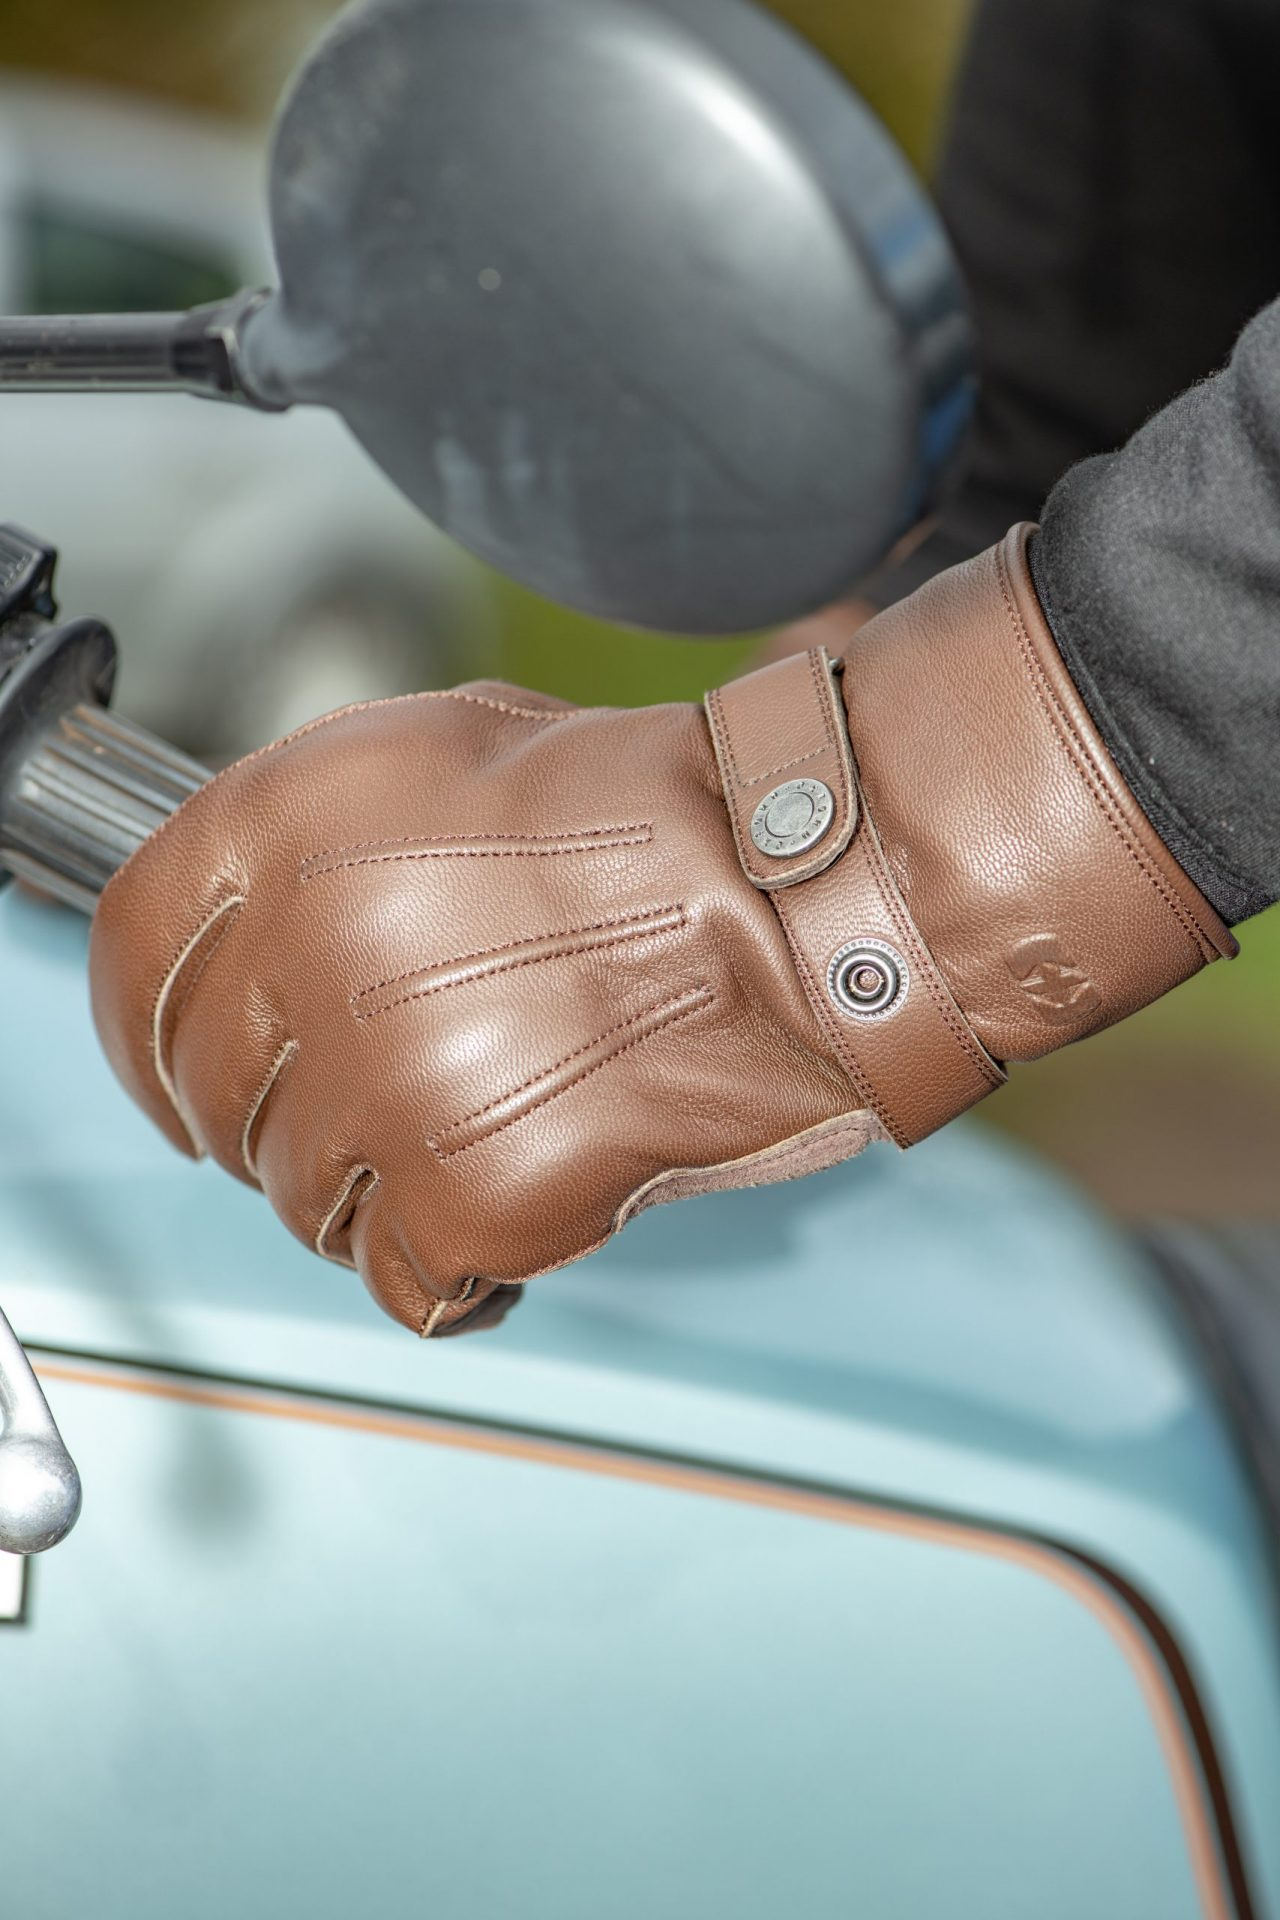 GM215102-Holton-2.0-MS-Glove-Brown-04-scaled Holton WP Dry2Dry™ Urban Gloves